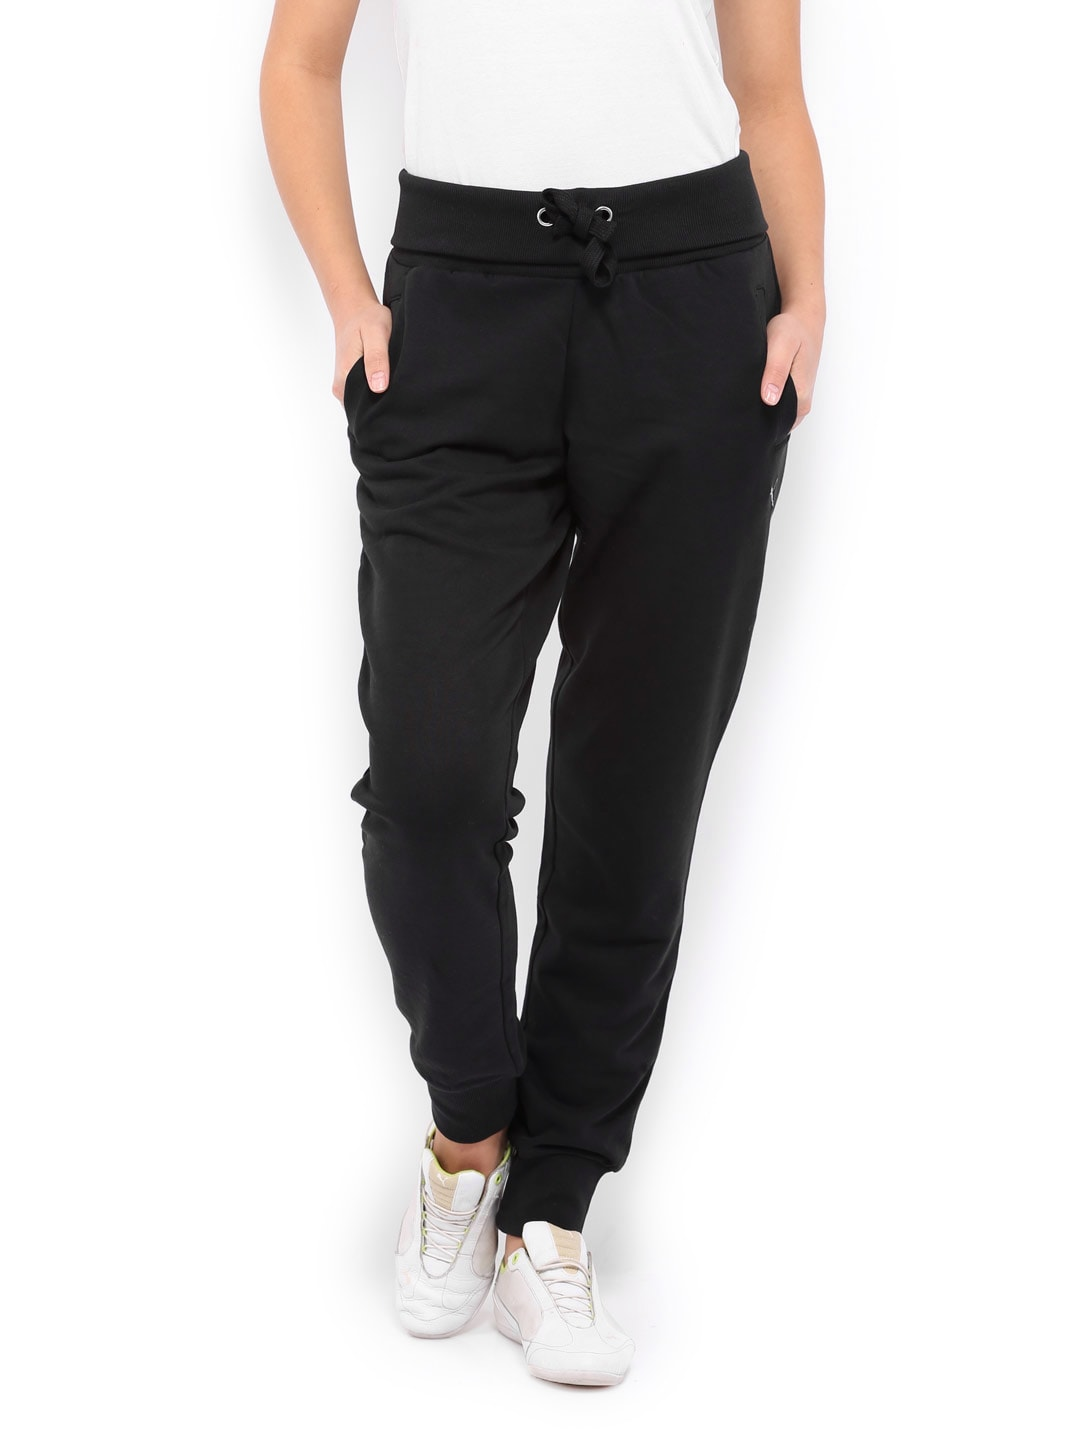 Puma Women Black Loose Fit Track Pants